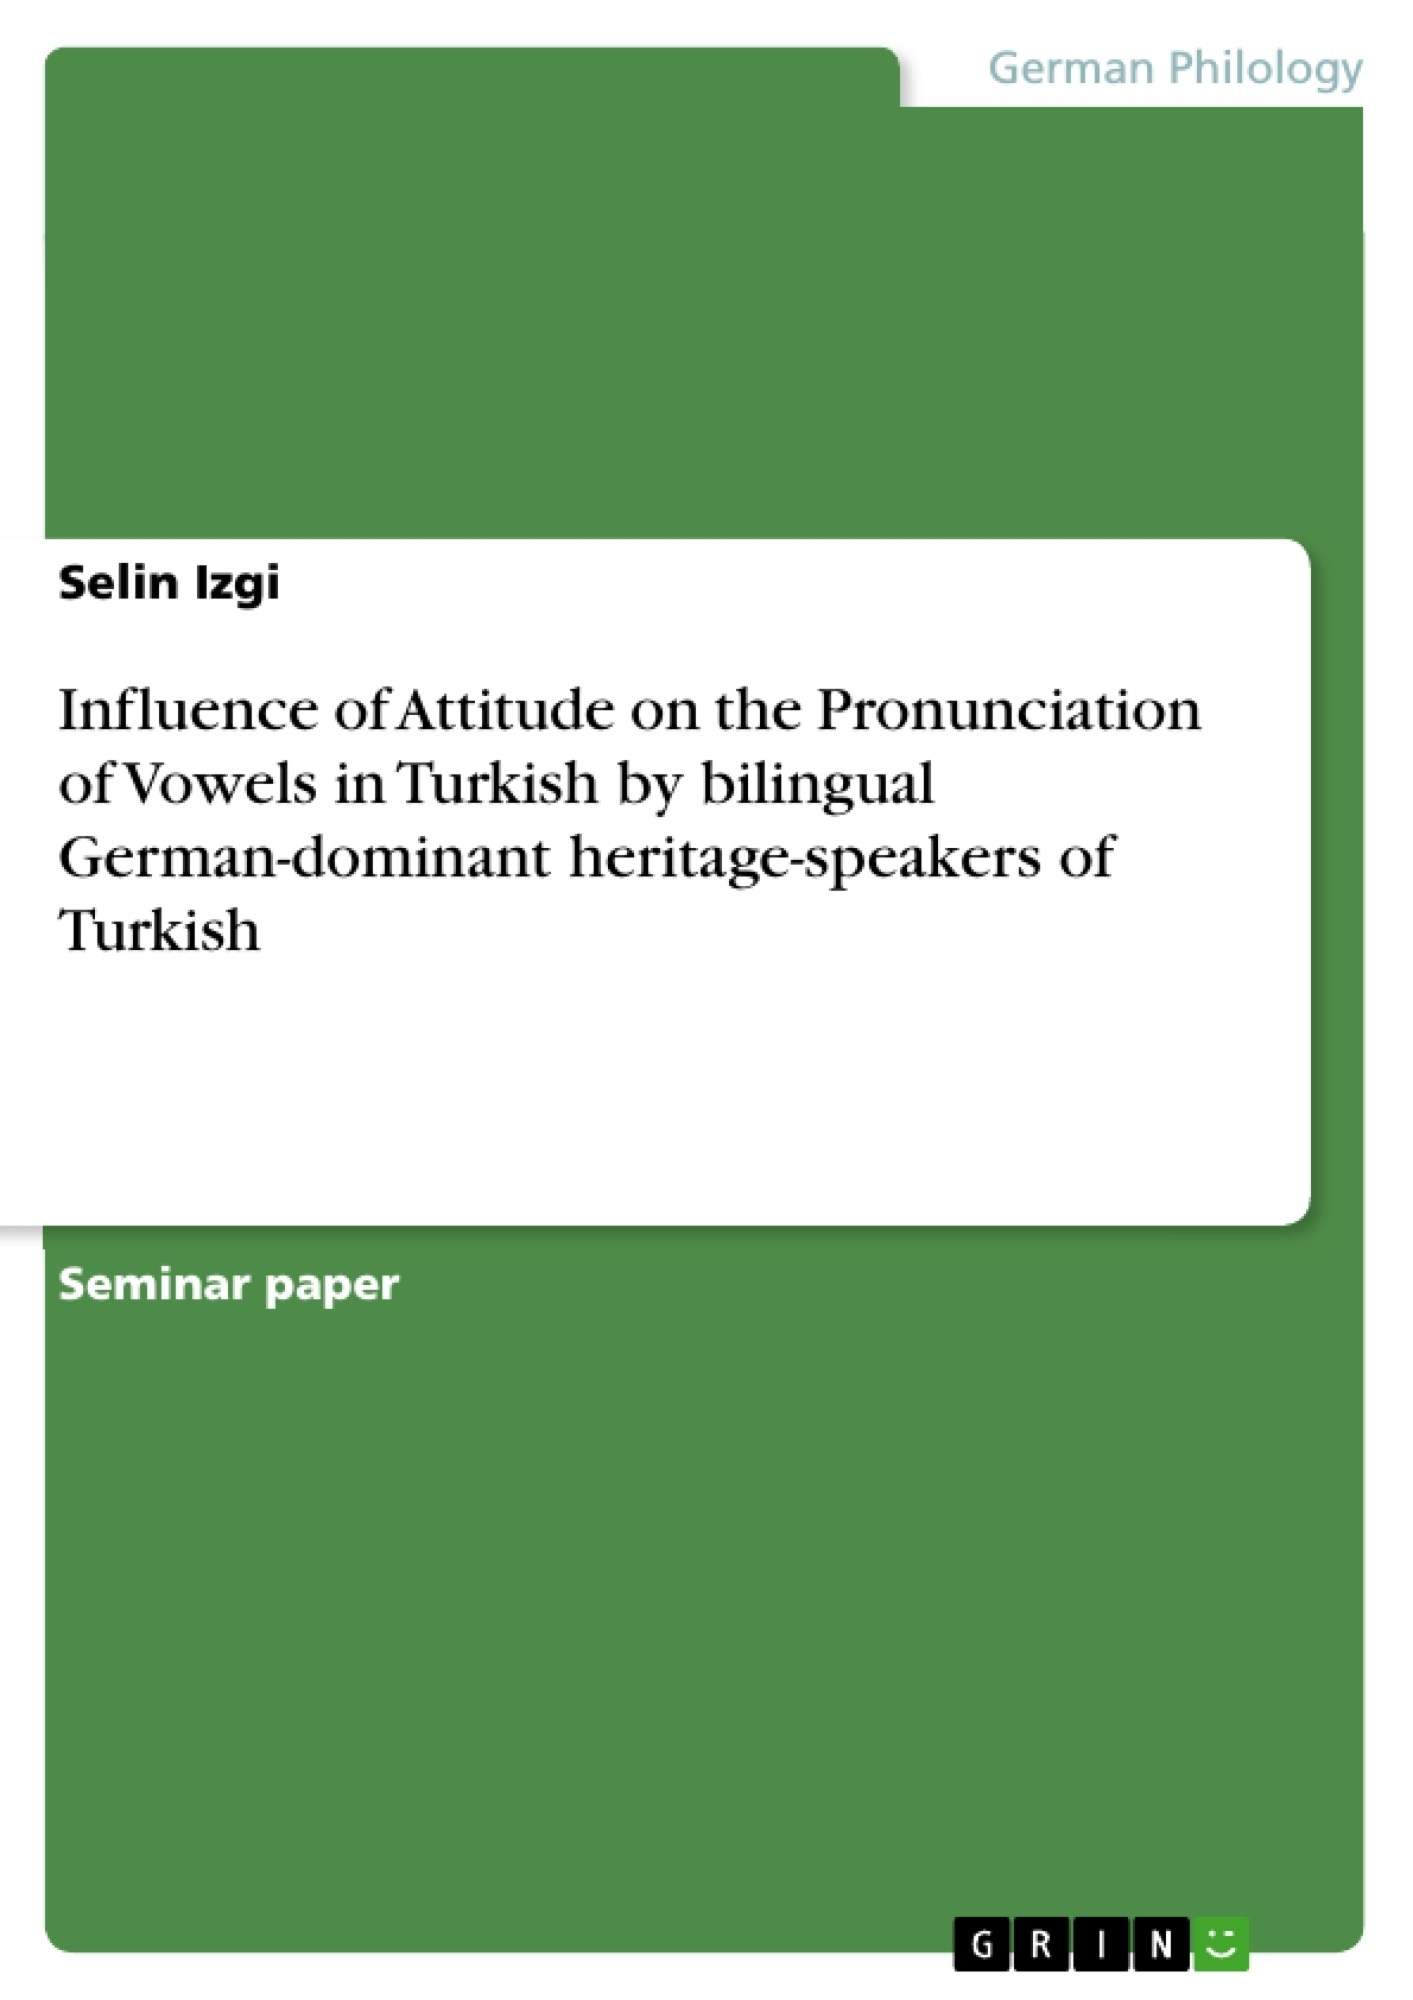 Title: Influence of Attitude on the Pronunciation of Vowels in Turkish by bilingual German-dominant heritage-speakers of Turkish